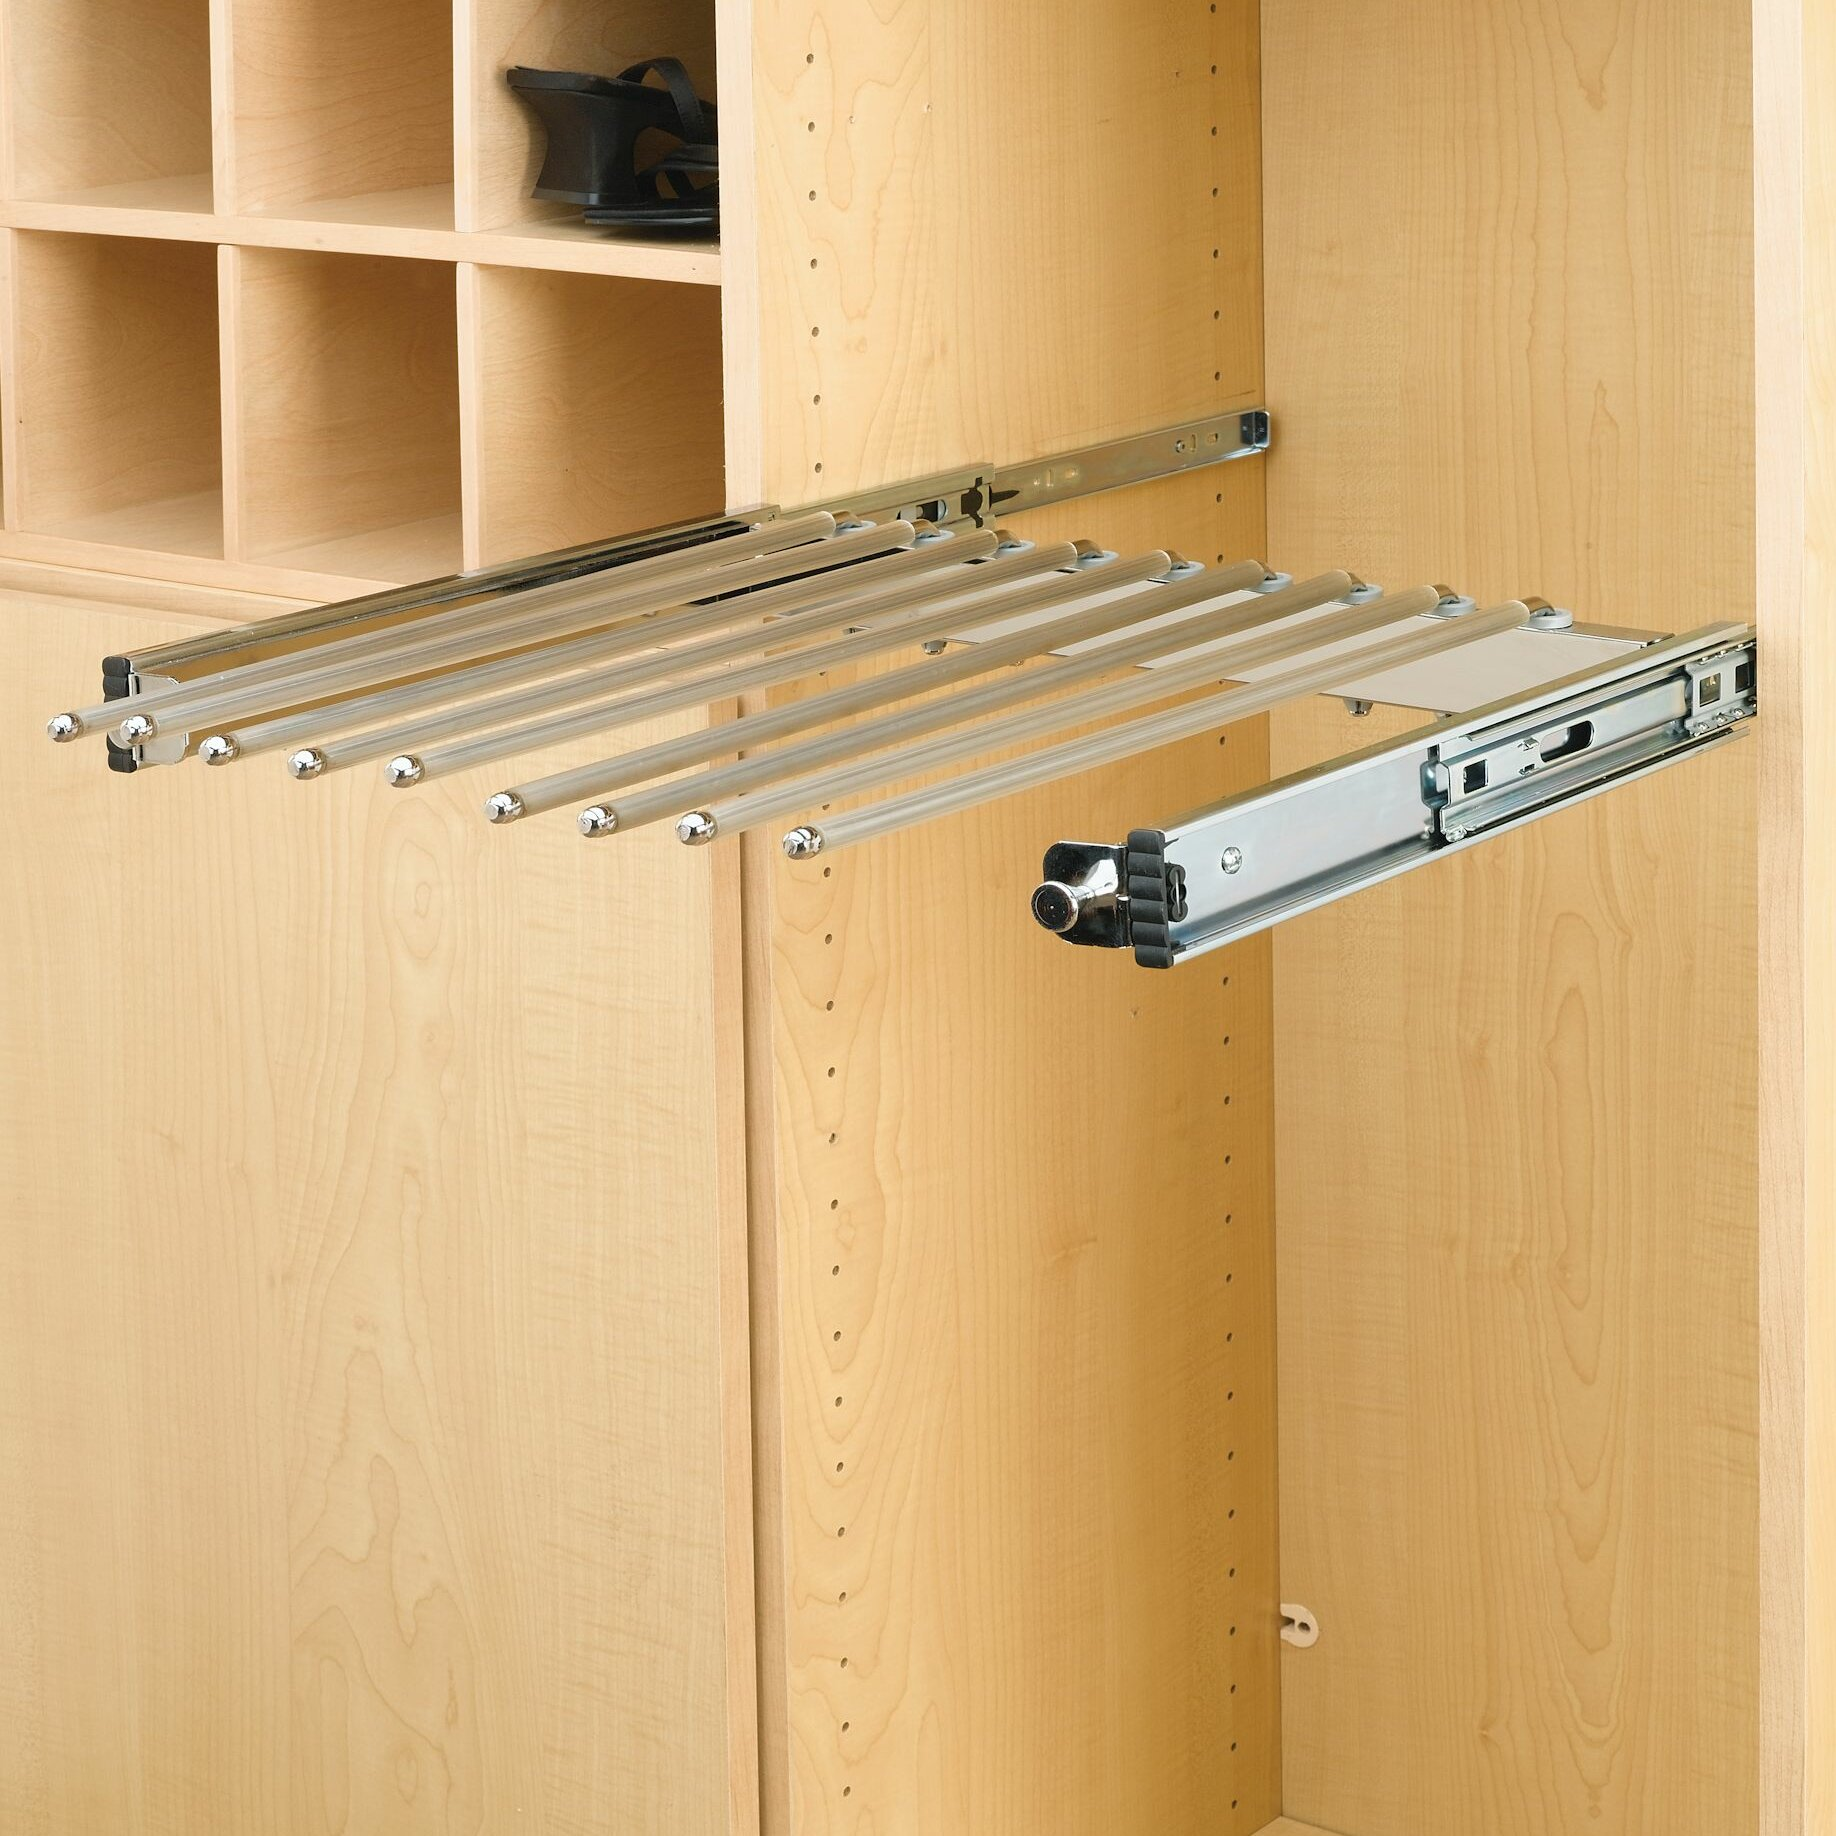 to ideas cleaning storage organizing how tips clothes closet home organize your com organization womansday best pants rack